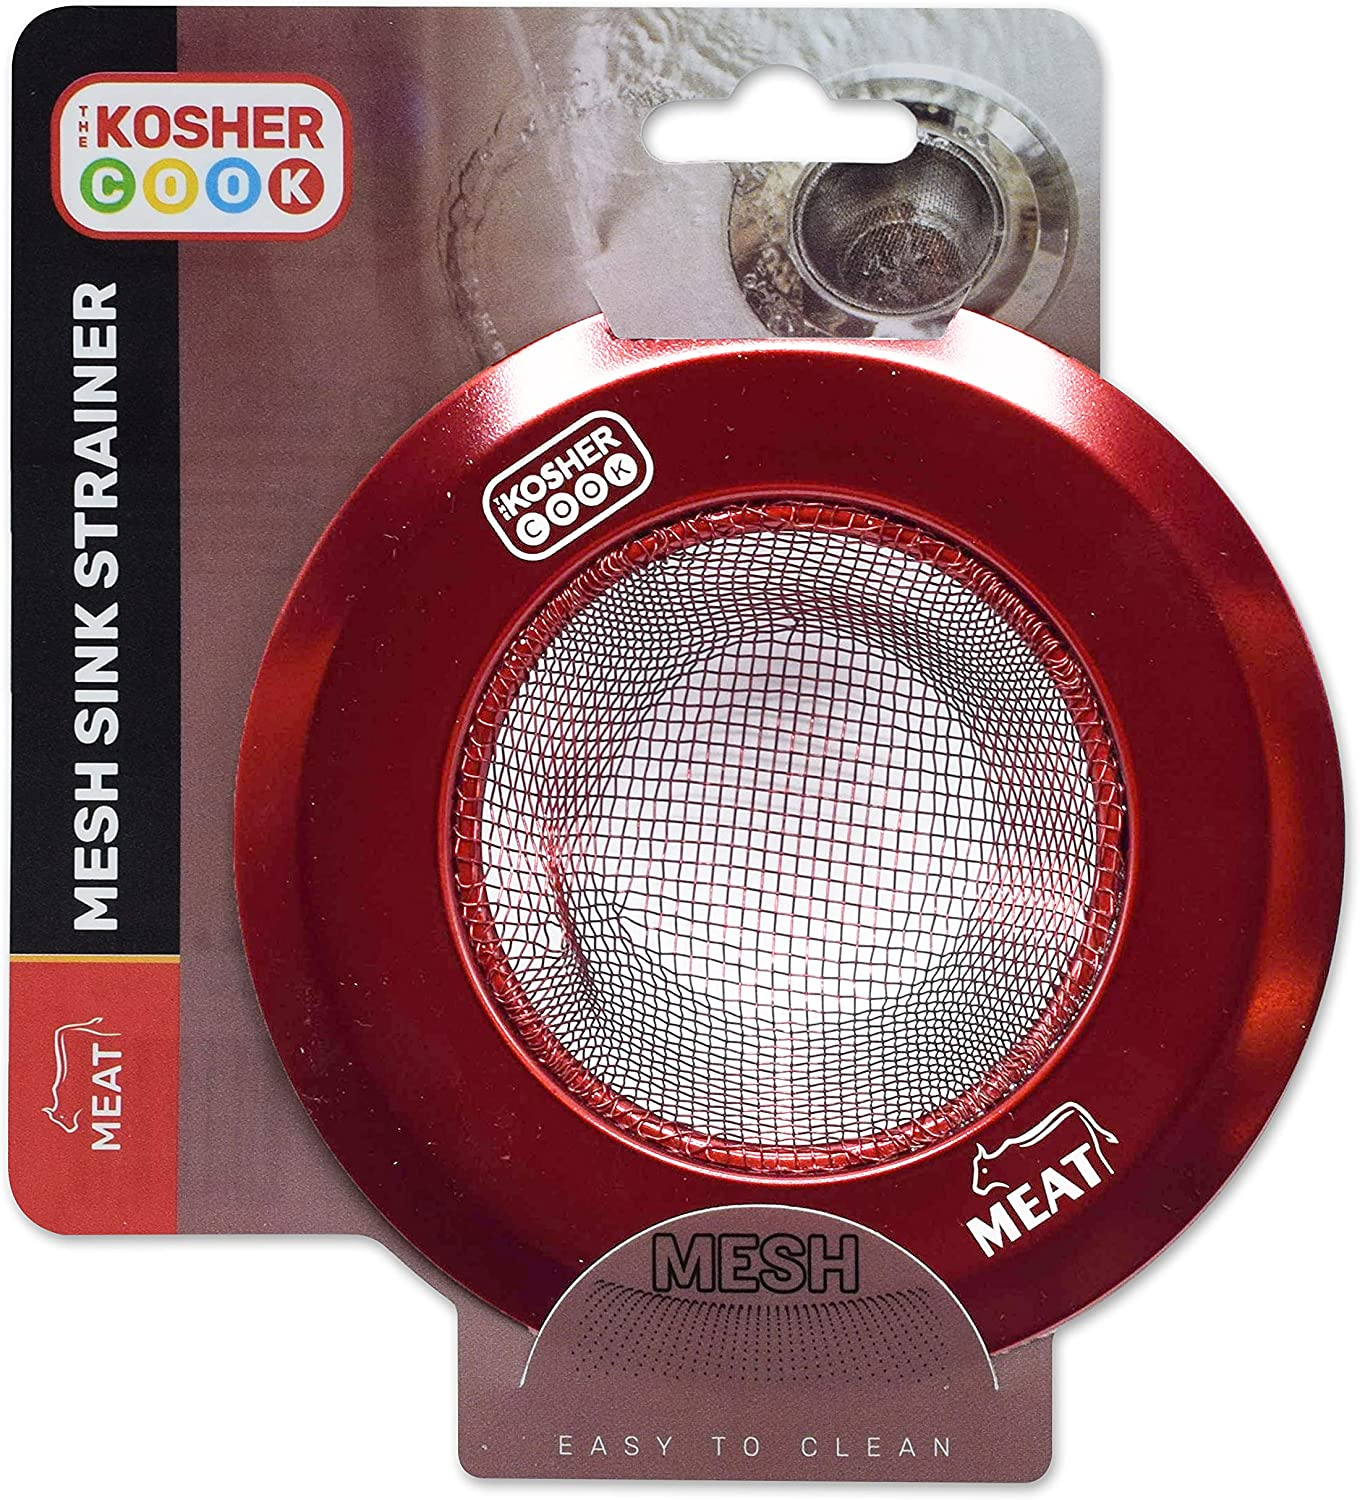 Meat Red Mesh Sink Strainer - Prevent Clogs and Stoppage in Kitchen Sink - Color Coded Kitchen Tools by The Kosher Cook